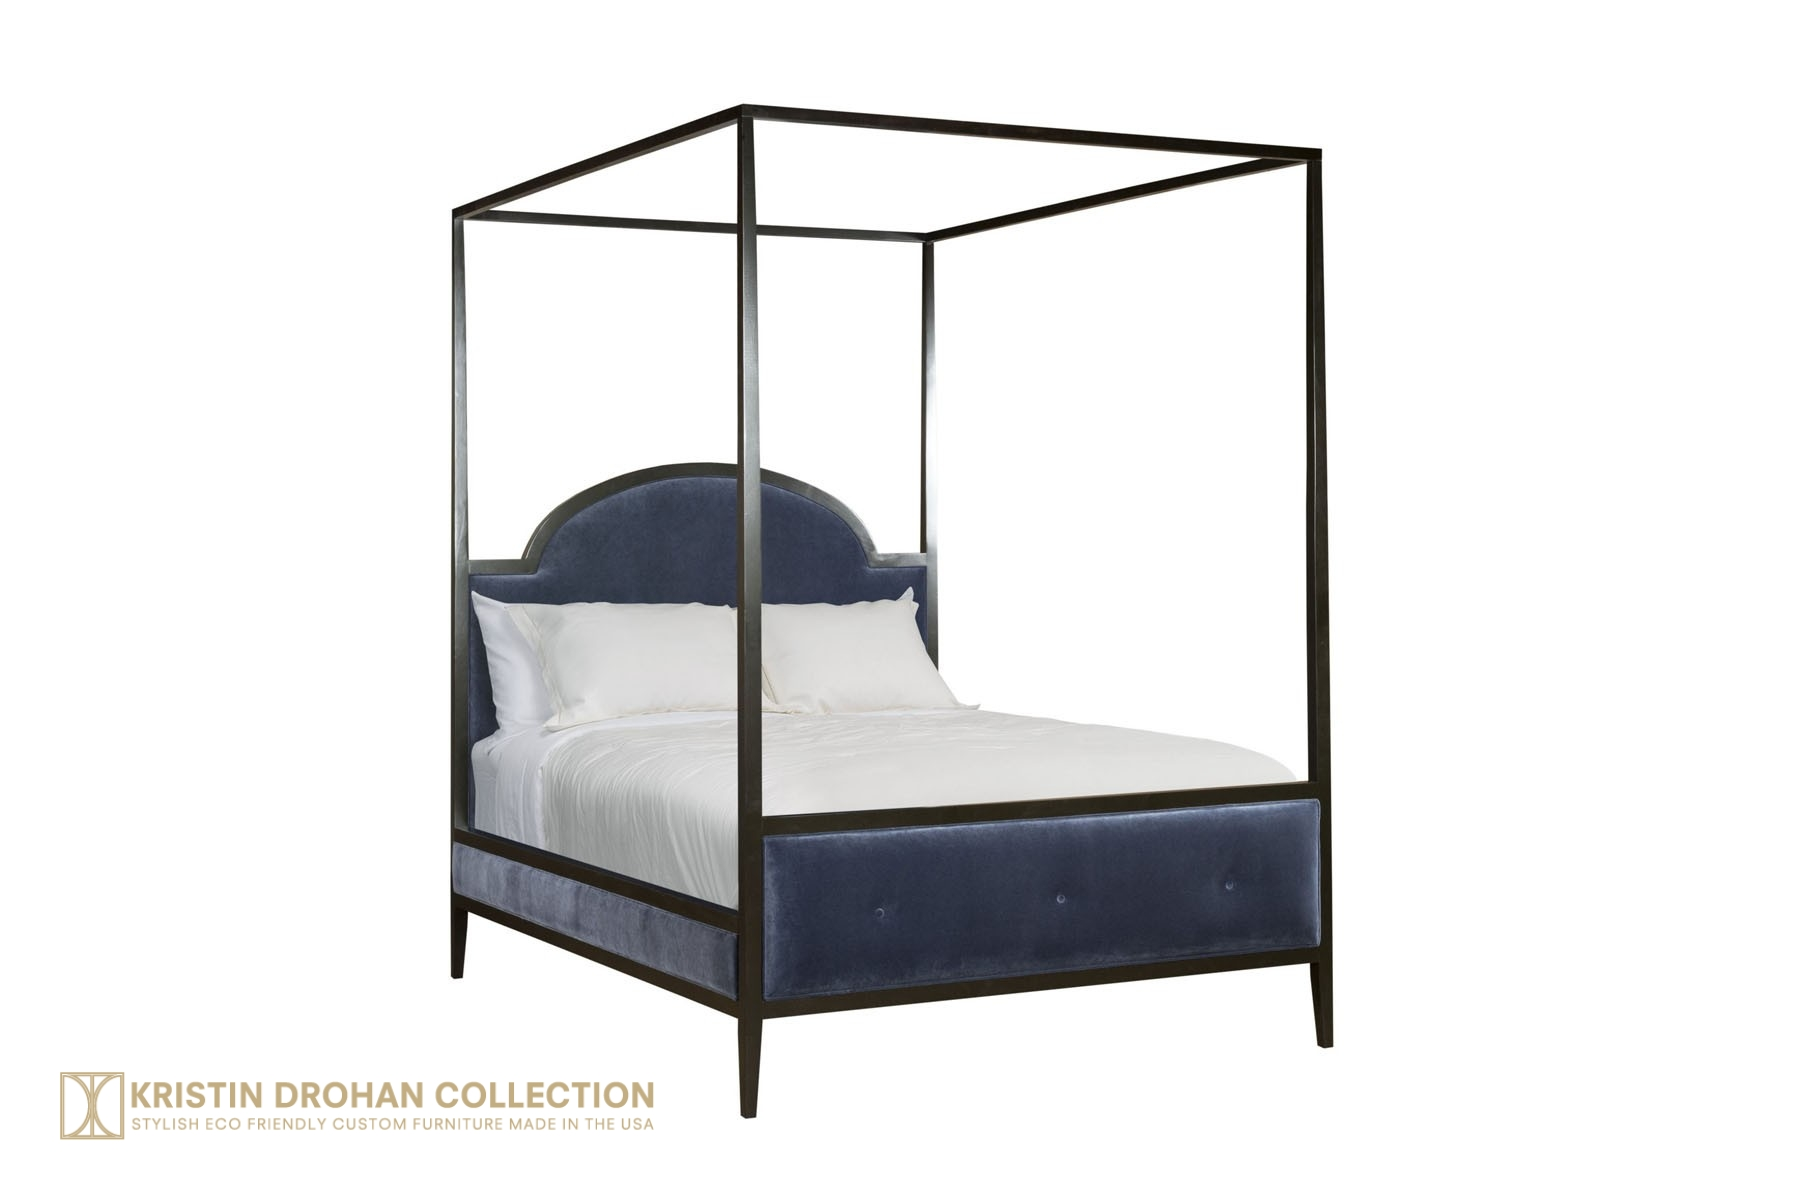 John Canopy Bed Designer Bed Kristin Drohan Collection